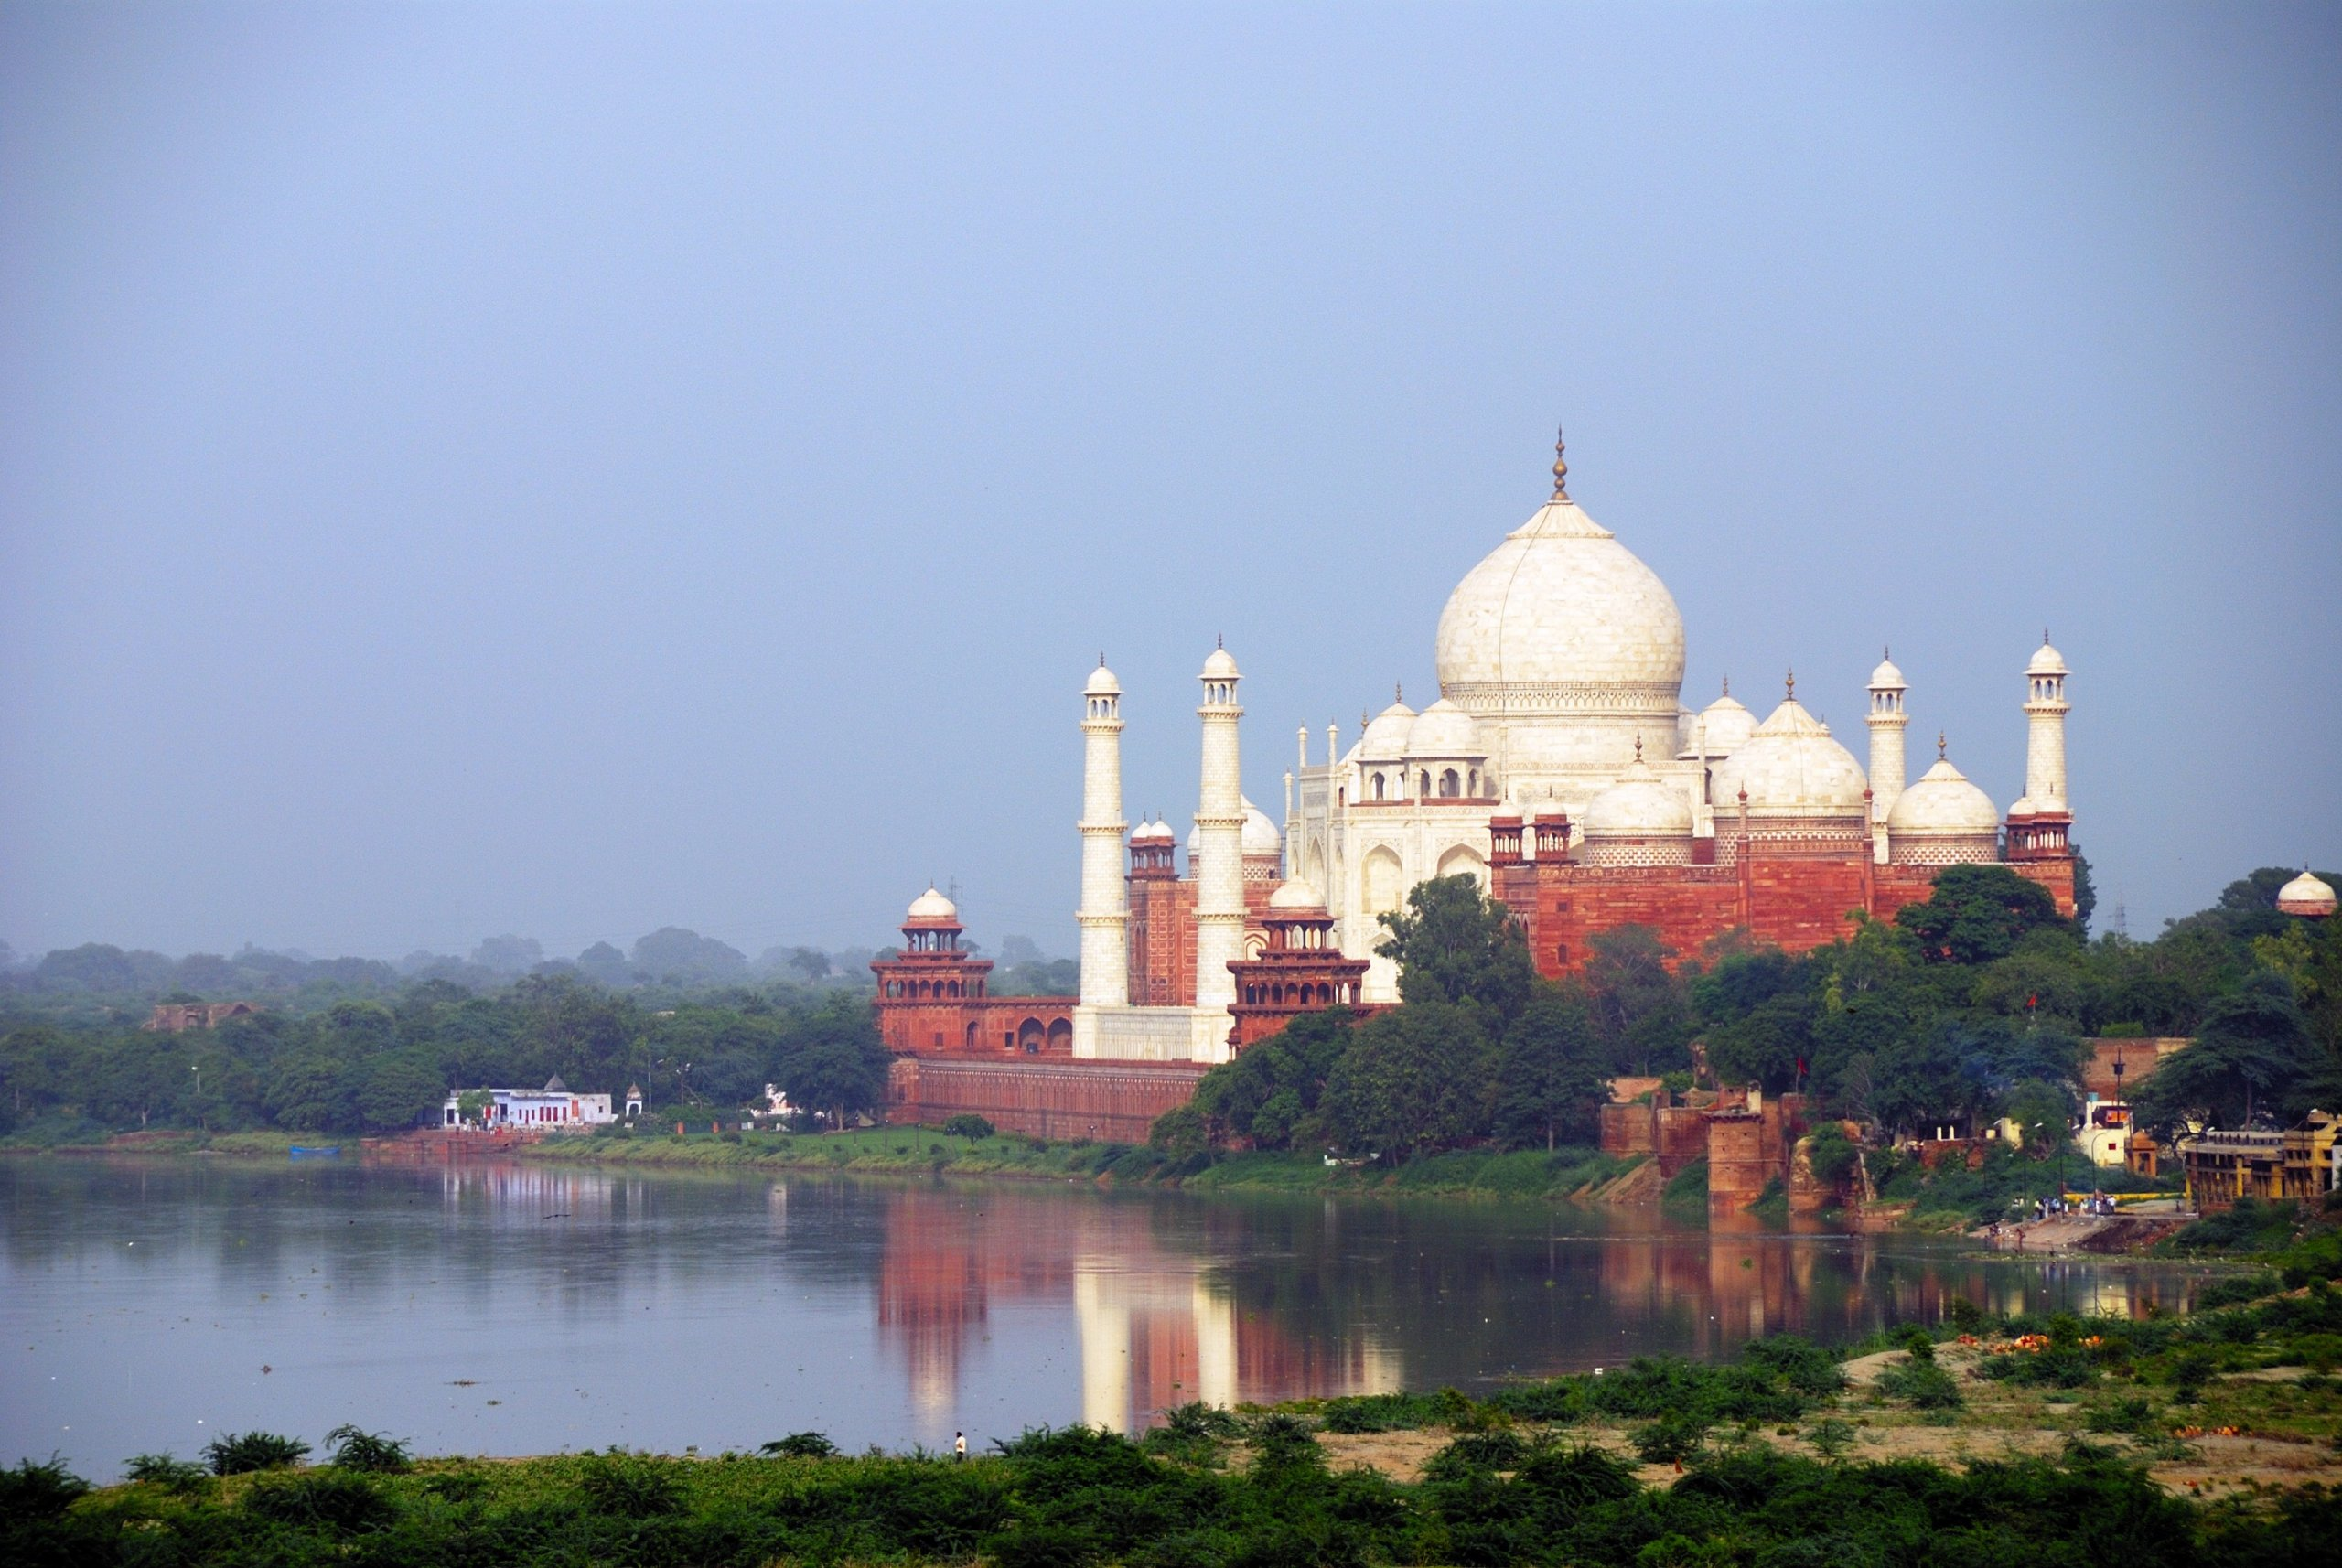 India Agra Tag Mahal